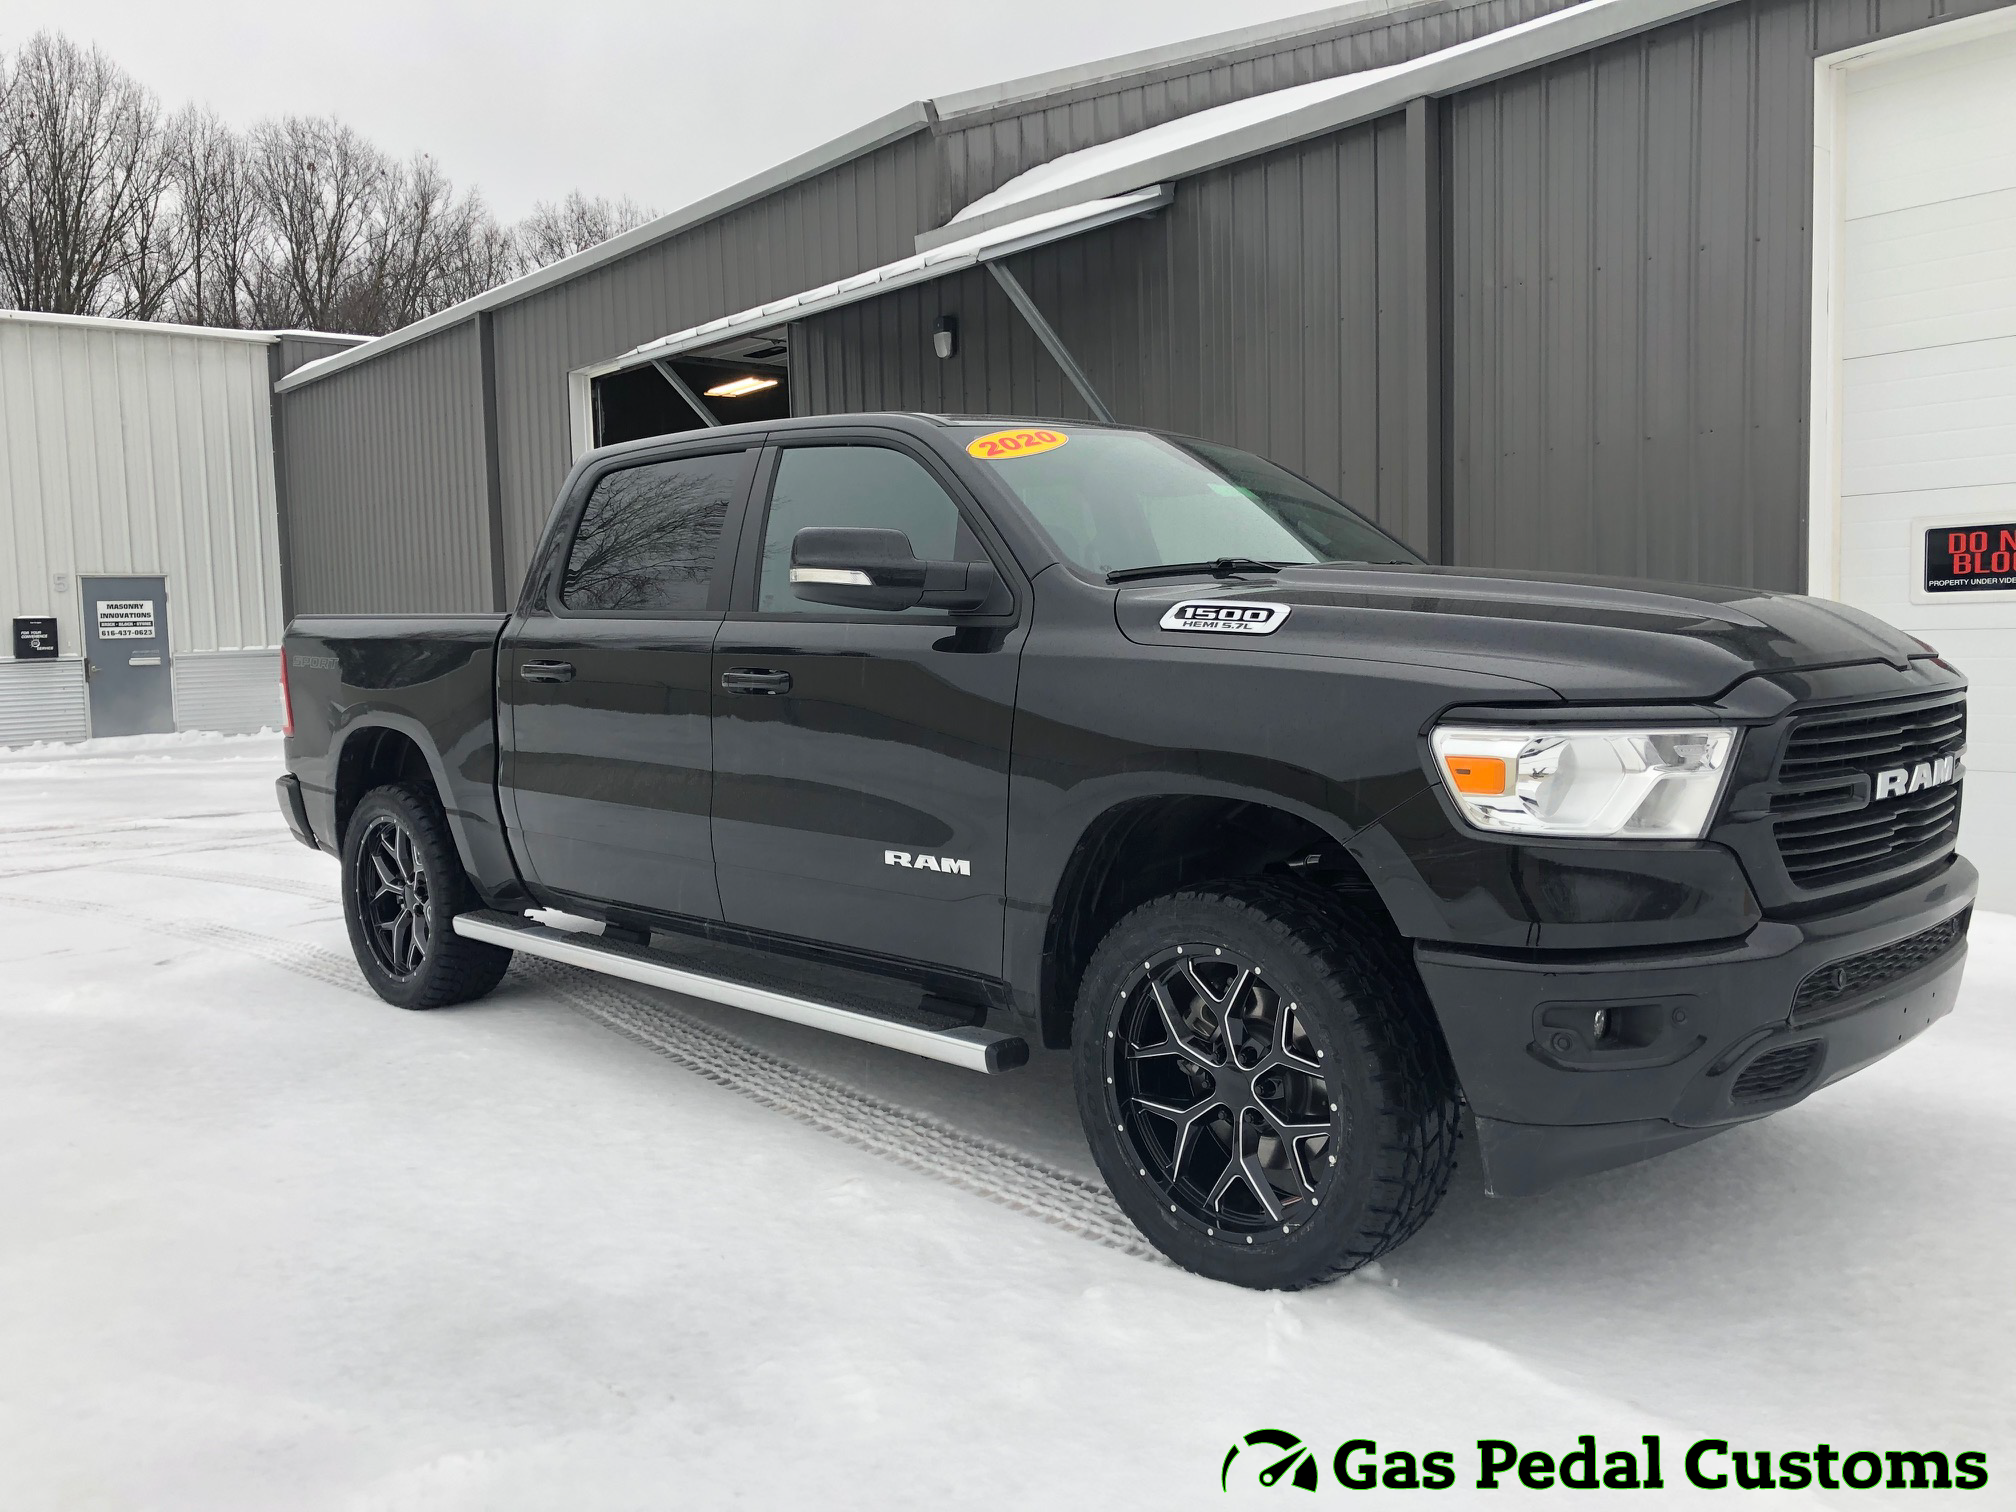 2020 Ram 1500 With 22 Inch Wheels Automotive Truck Accessories Offroad Accessories